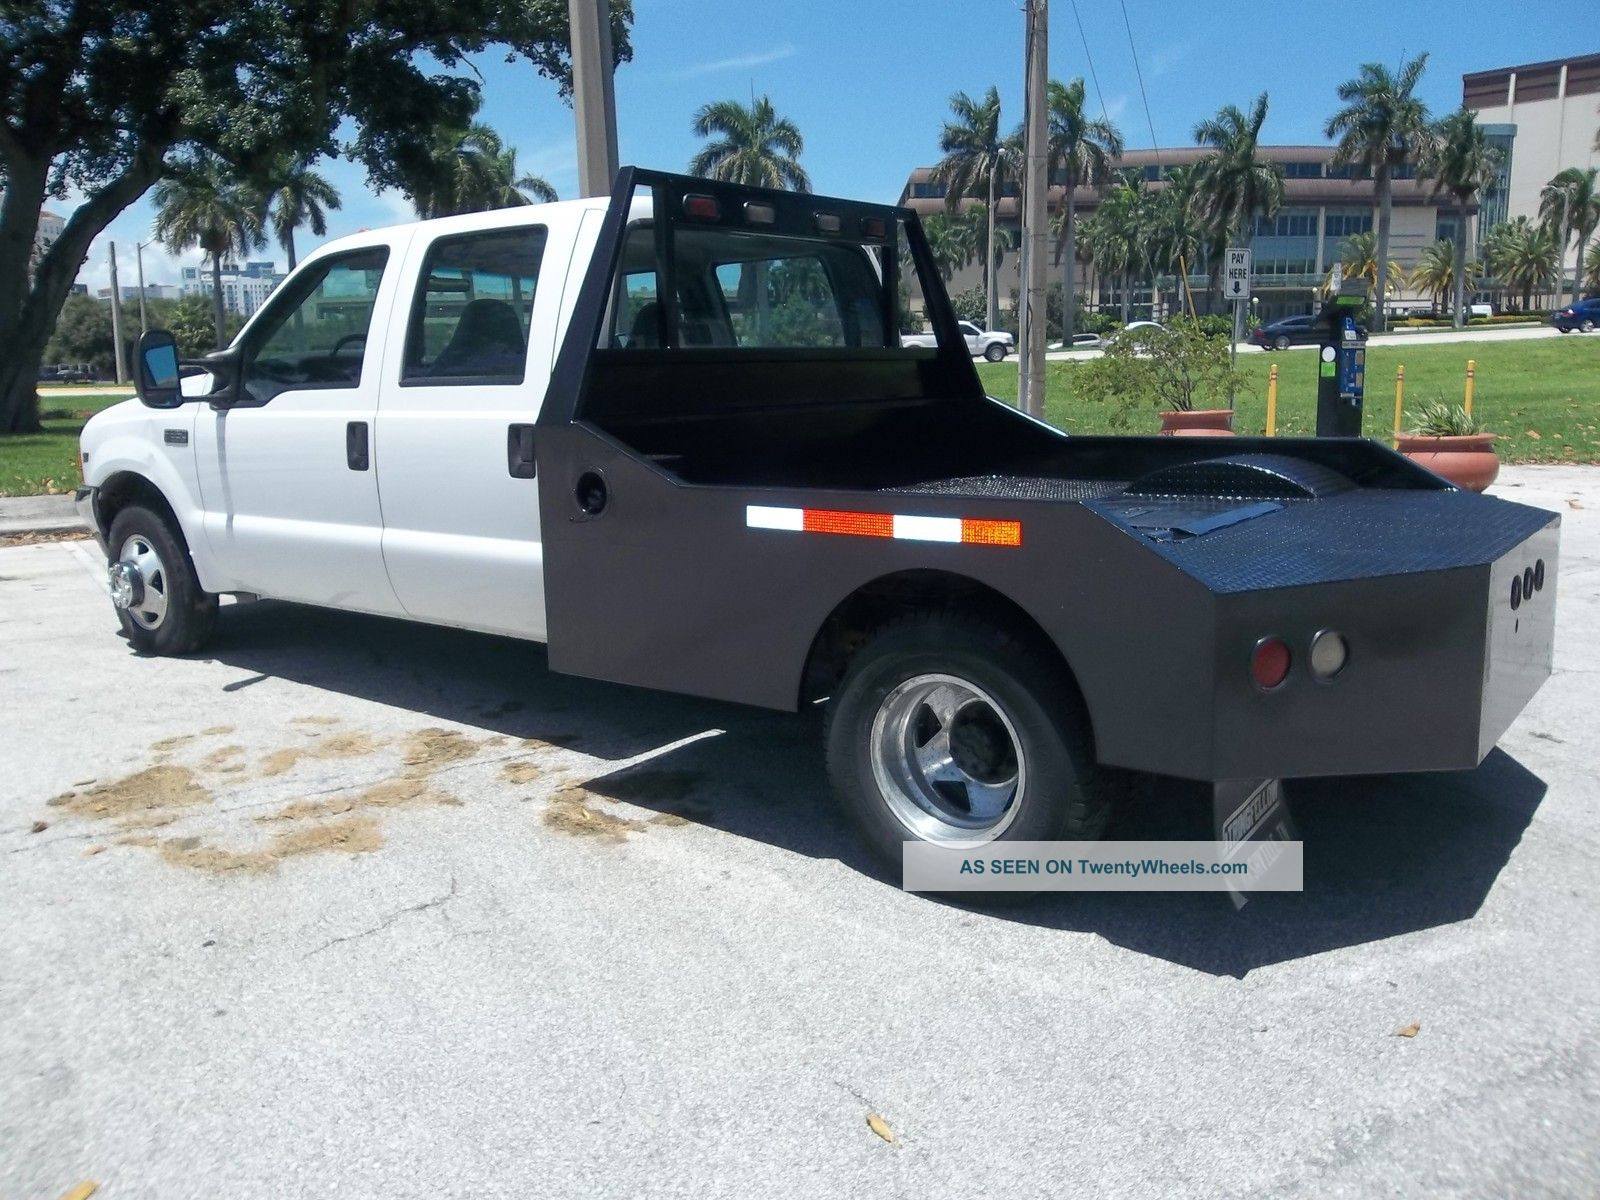 towing chart for 2014 f350 diesel diesel ford f350 2006 towing